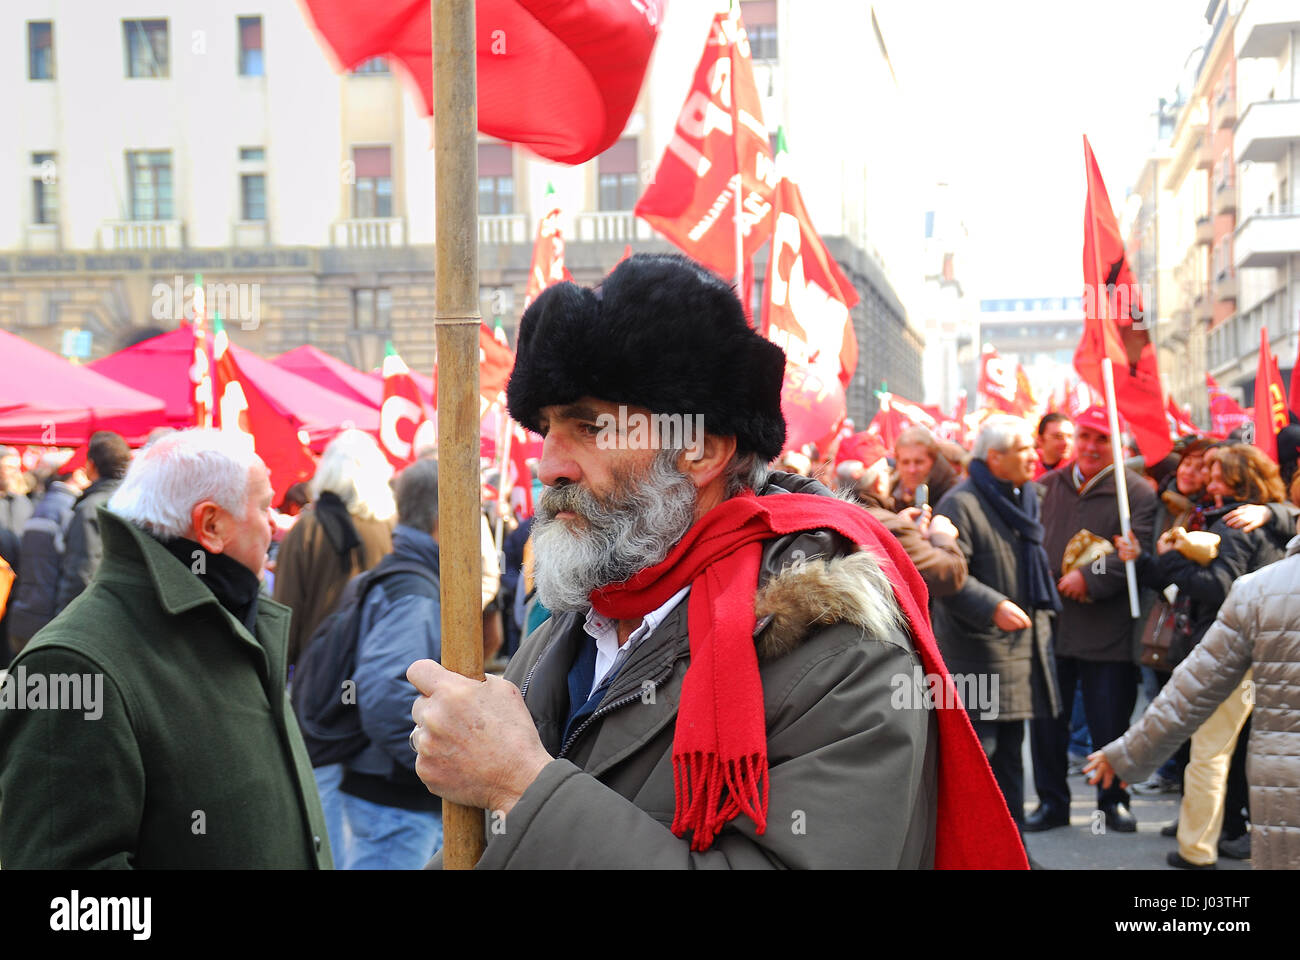 Padua, Italy, March 12th, 2010. General strike. A demonstrator. Portrait. - Stock Image